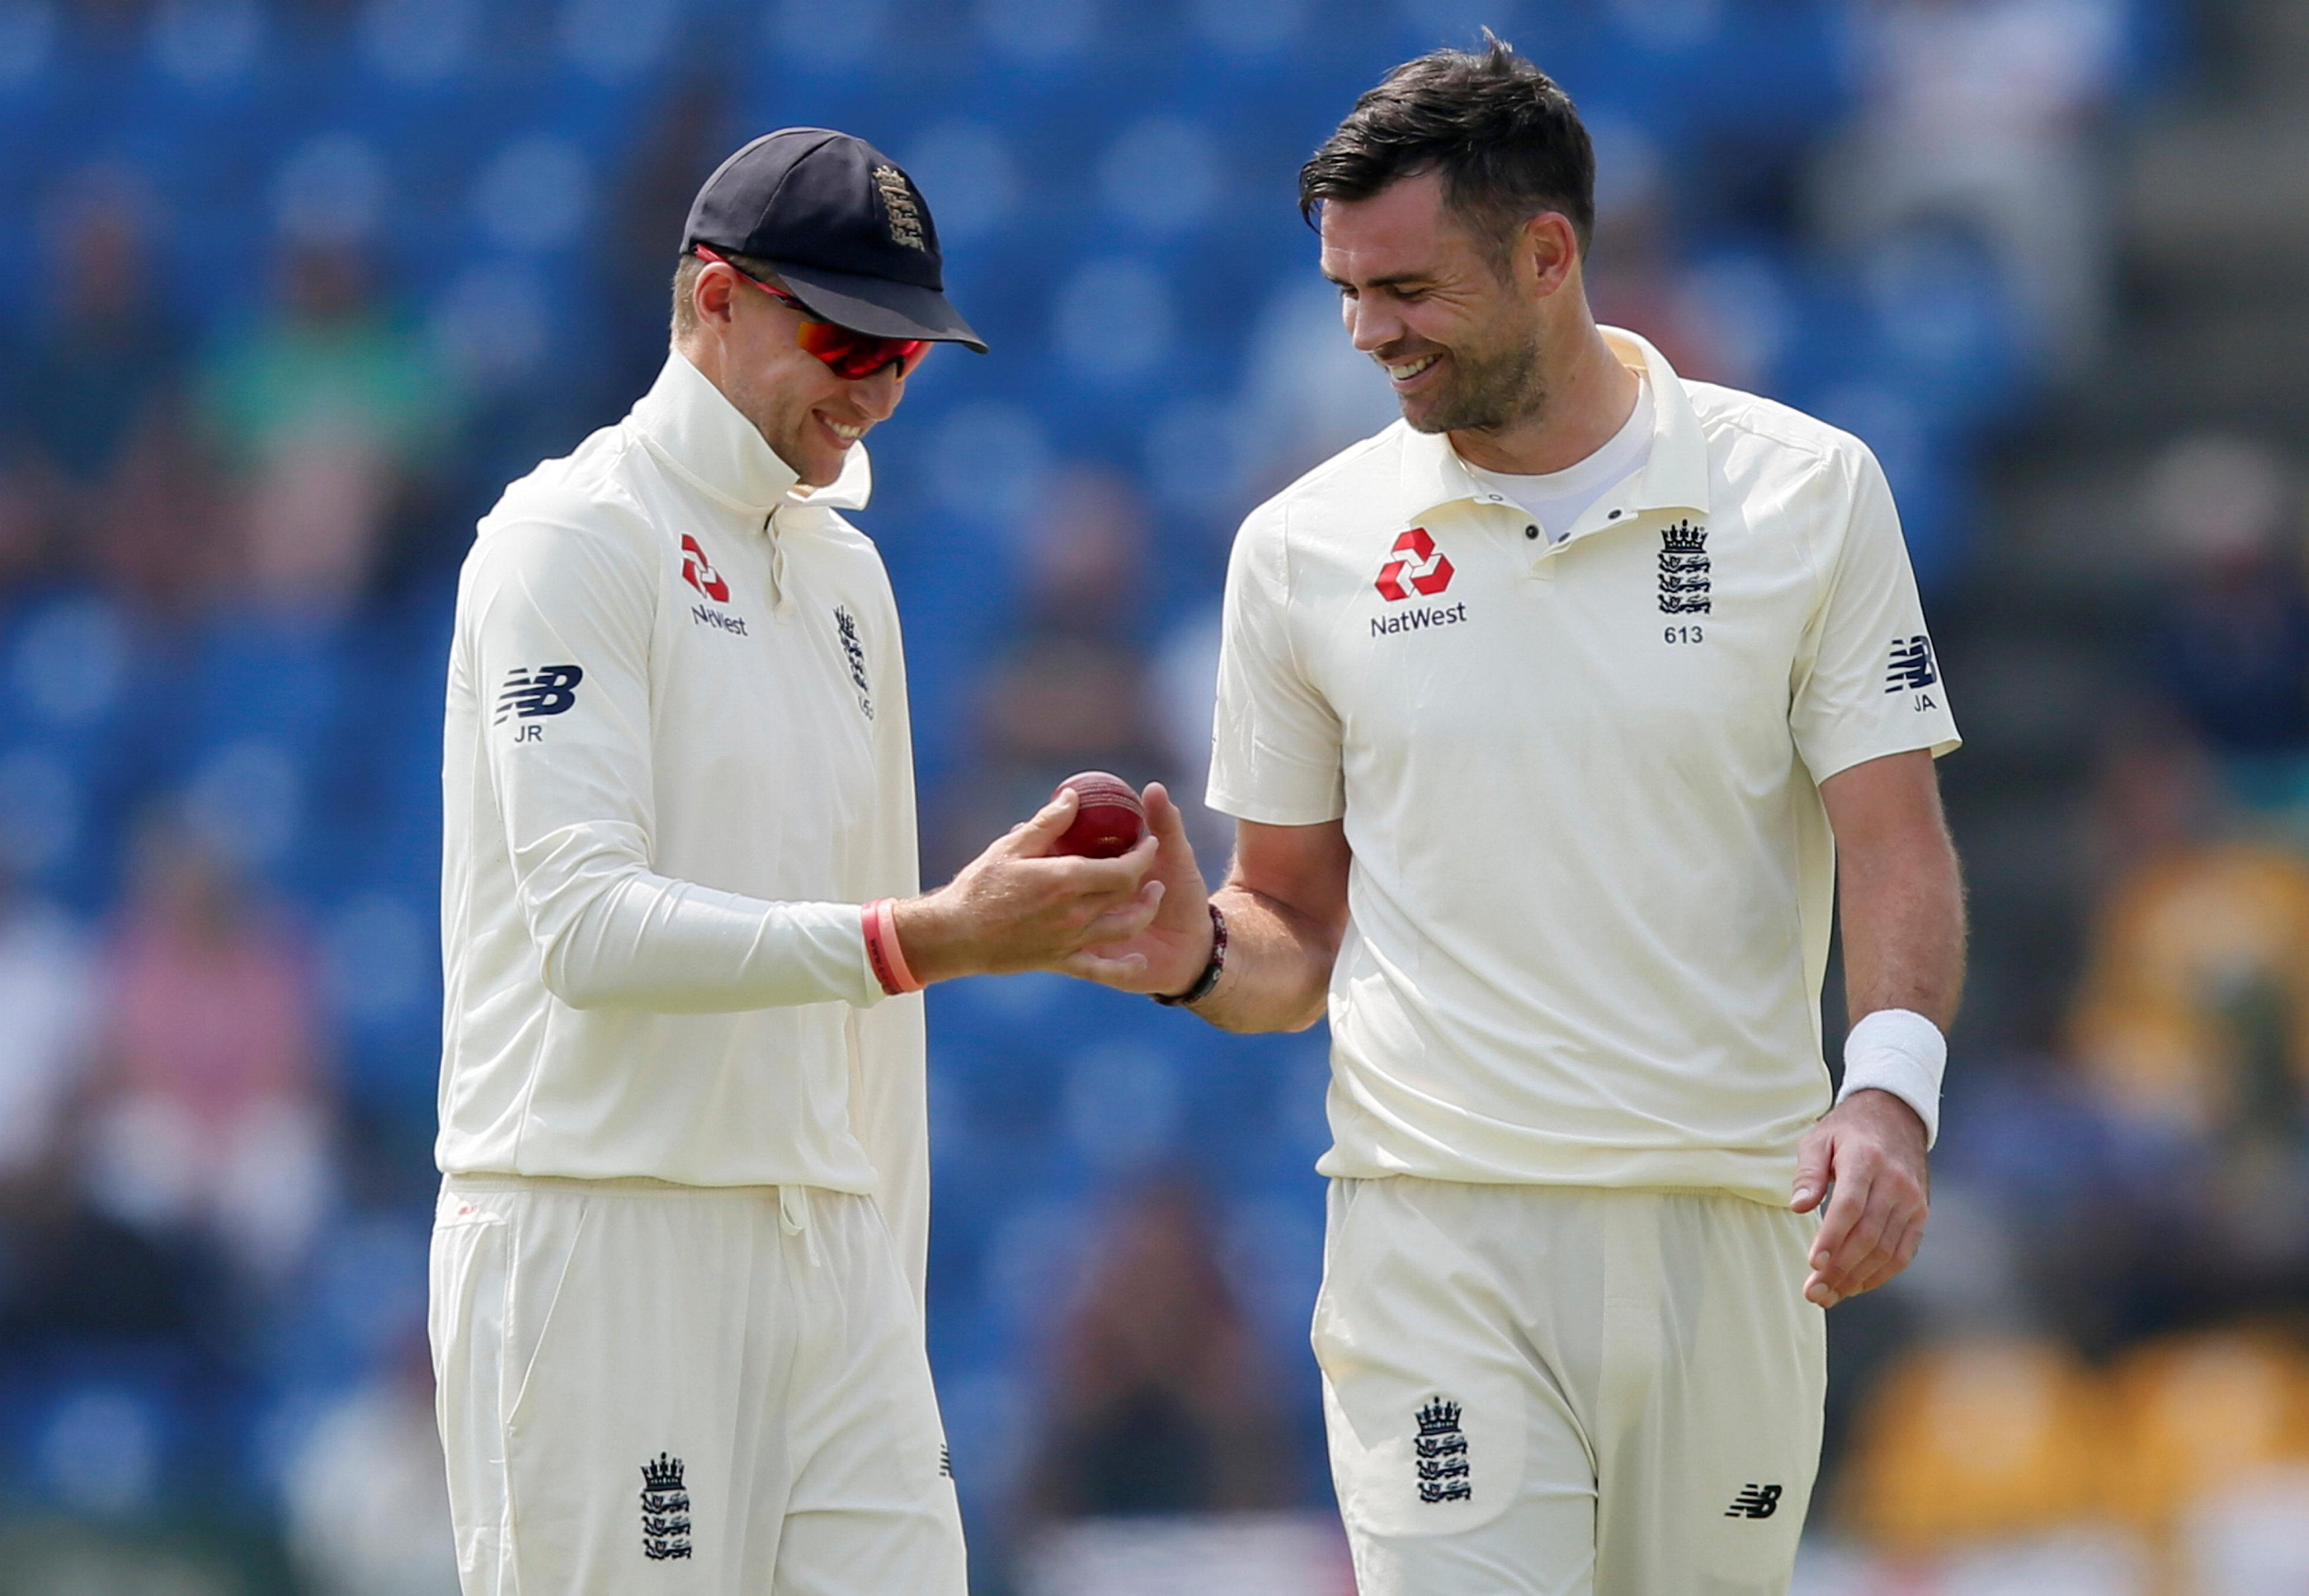 Joe Root has stepped up and insired team-mates like Jimmy Anderson